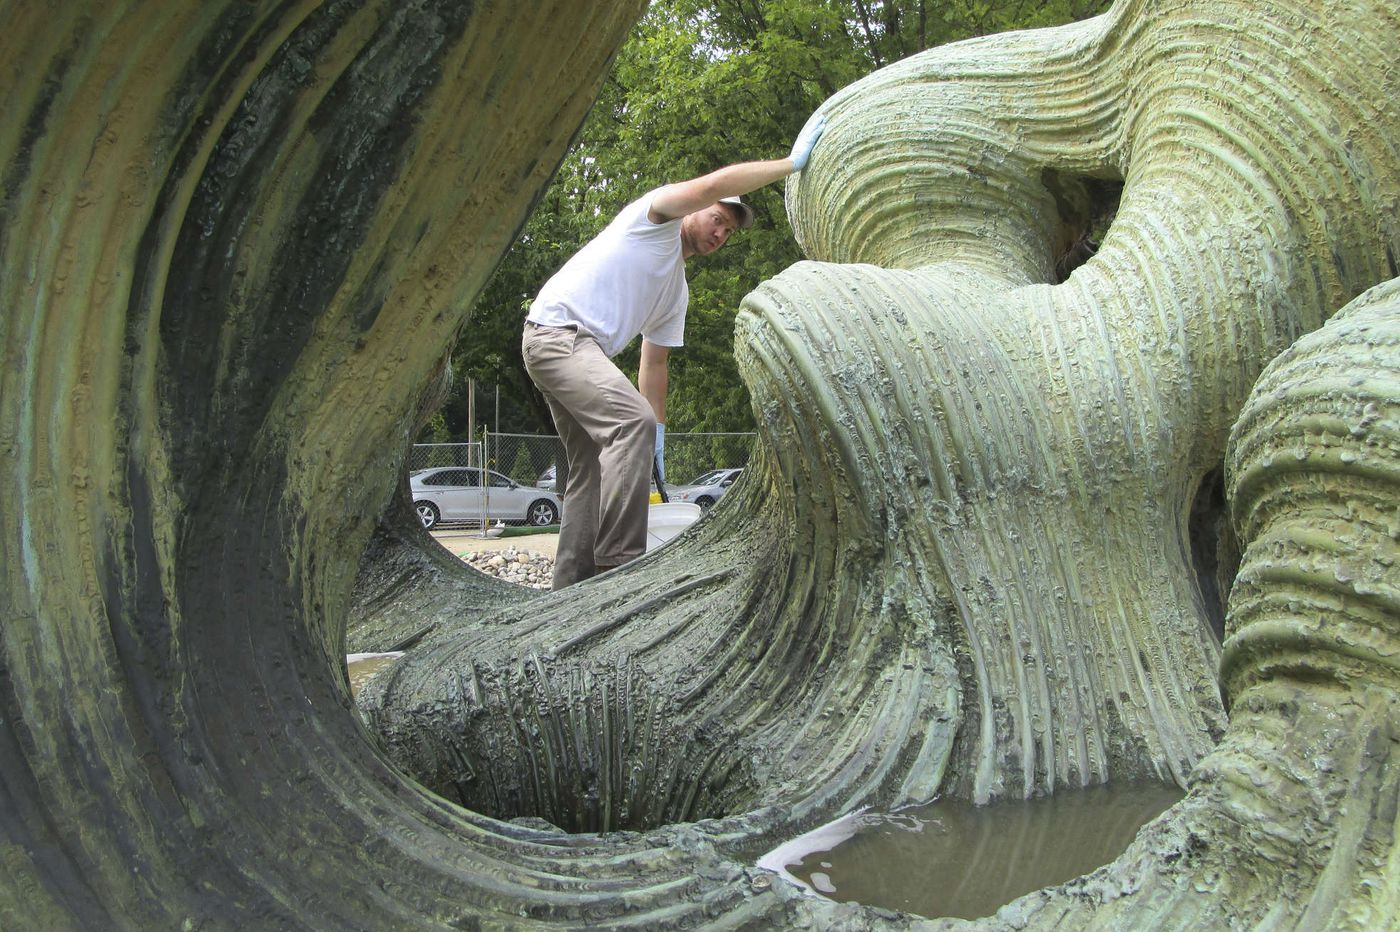 Old sculpture, new wonders: 'Plant Forms' comes to Woodmere